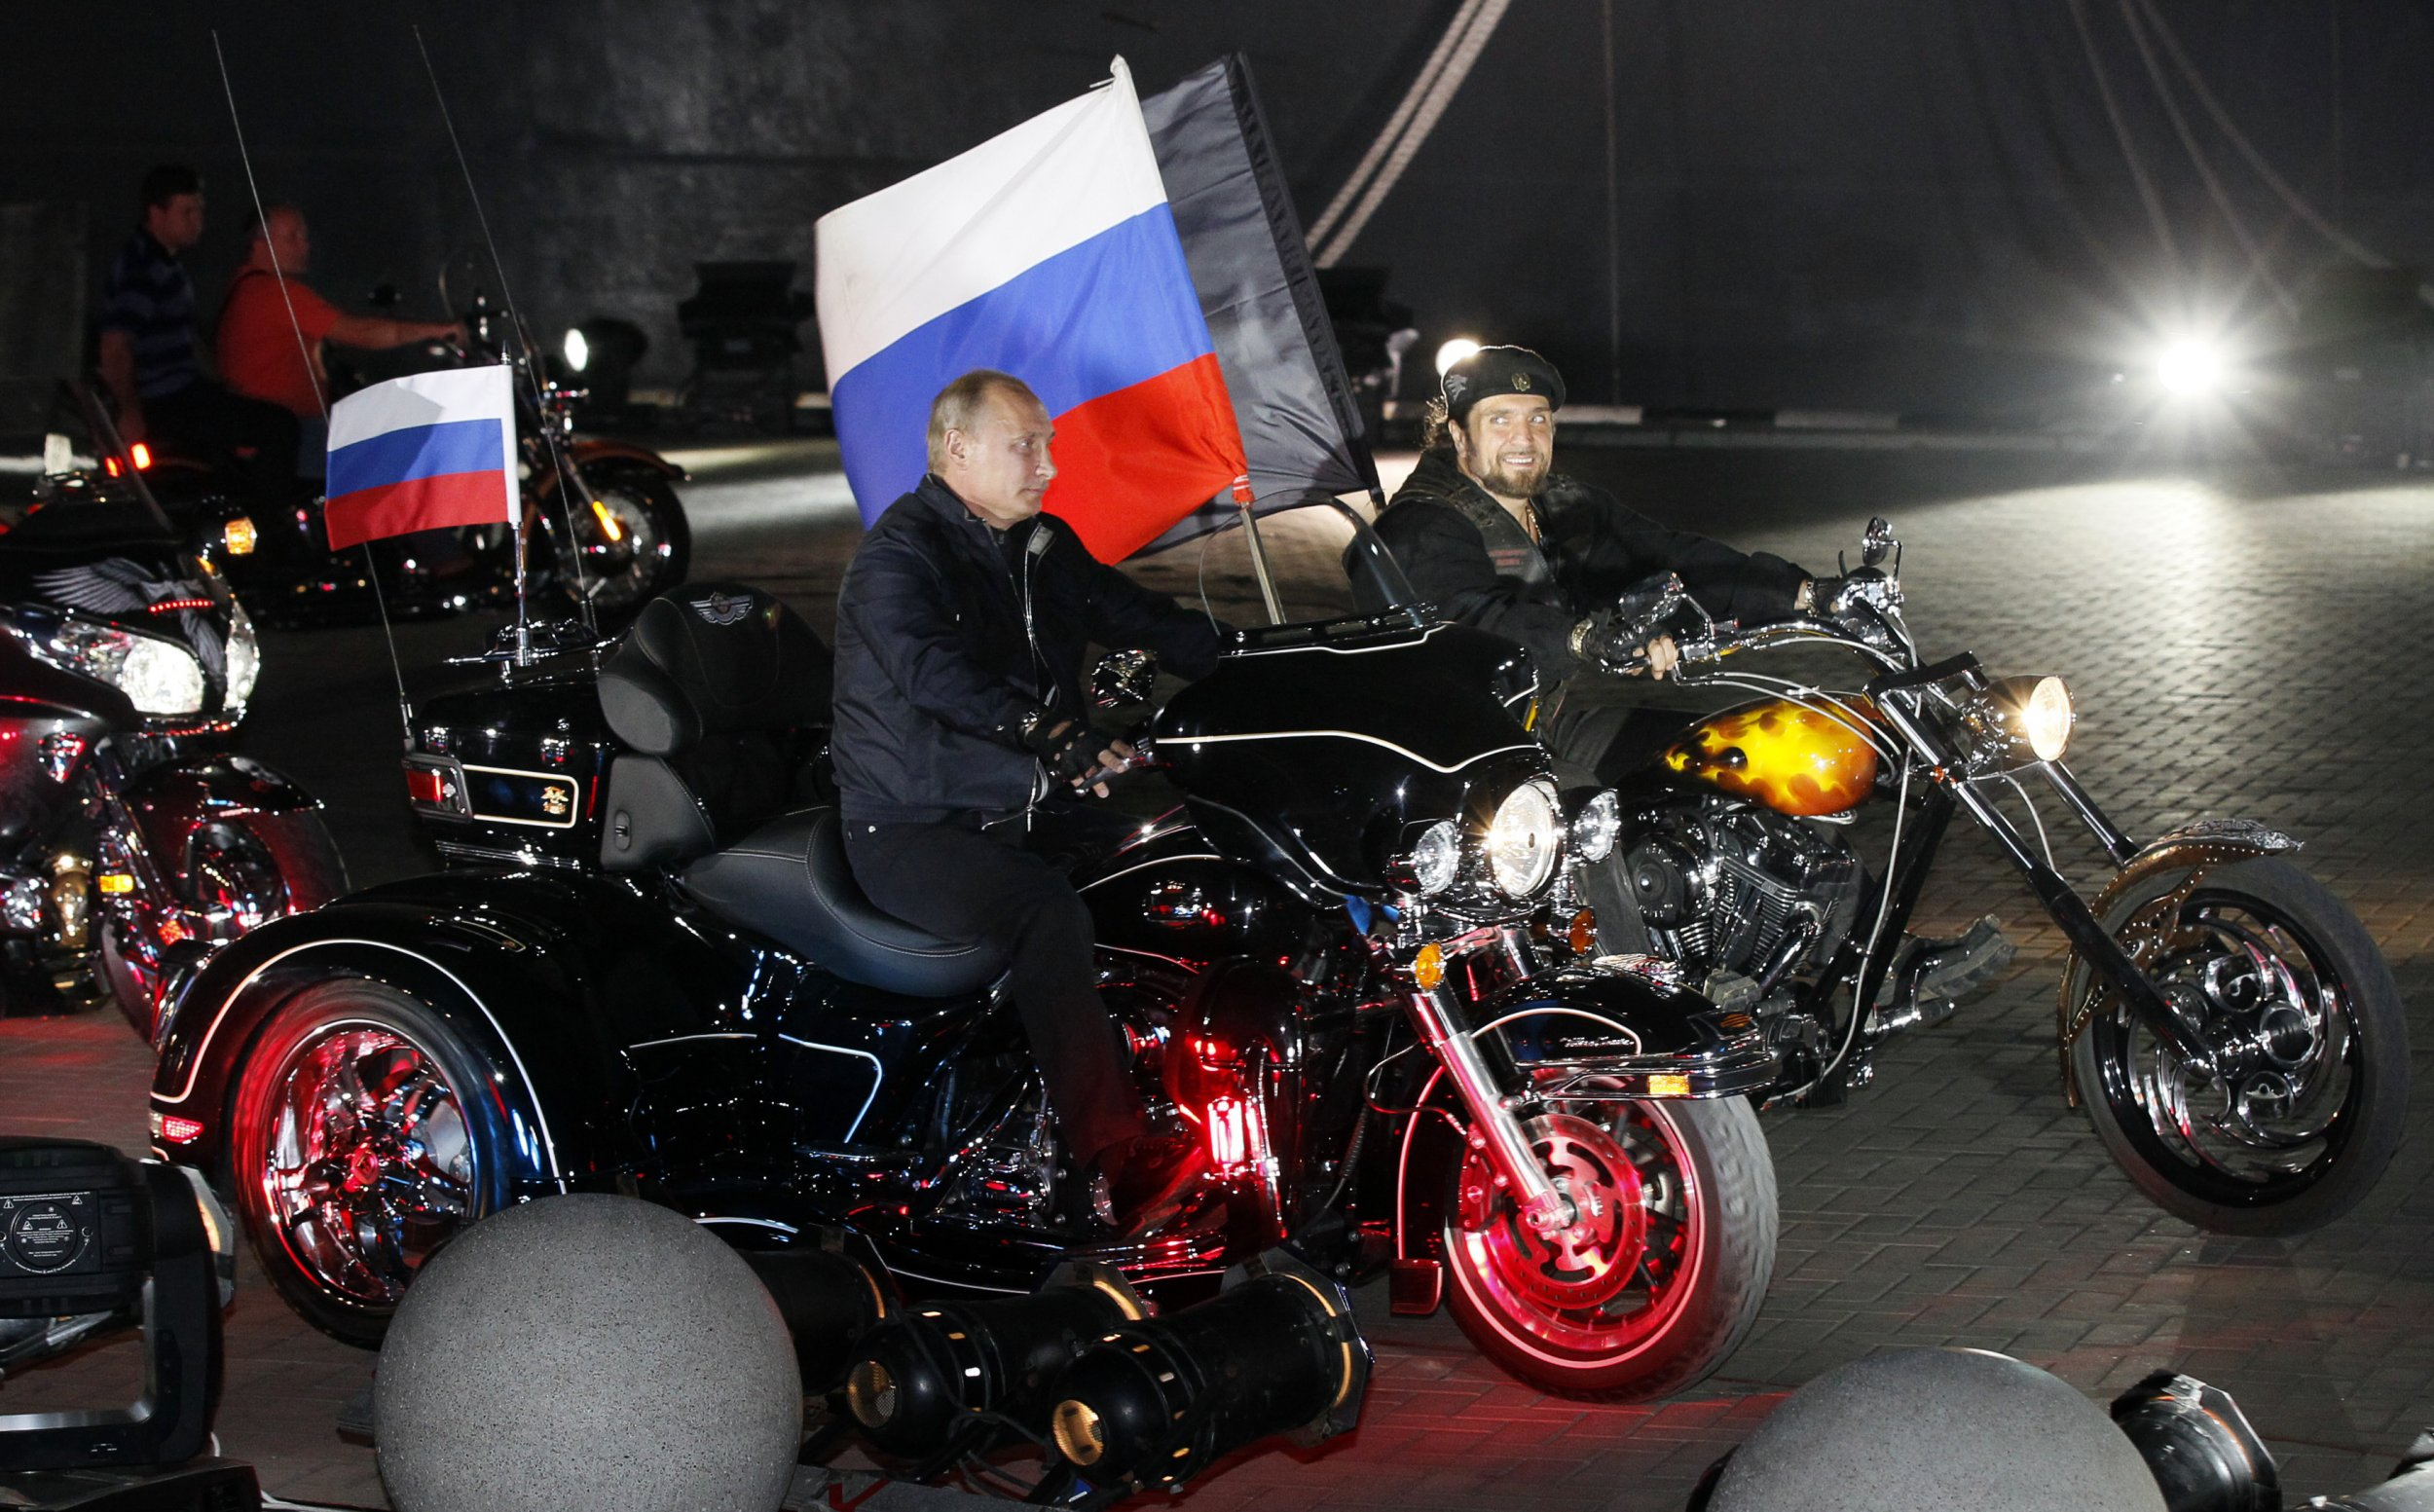 How Poland Russian bikers scared